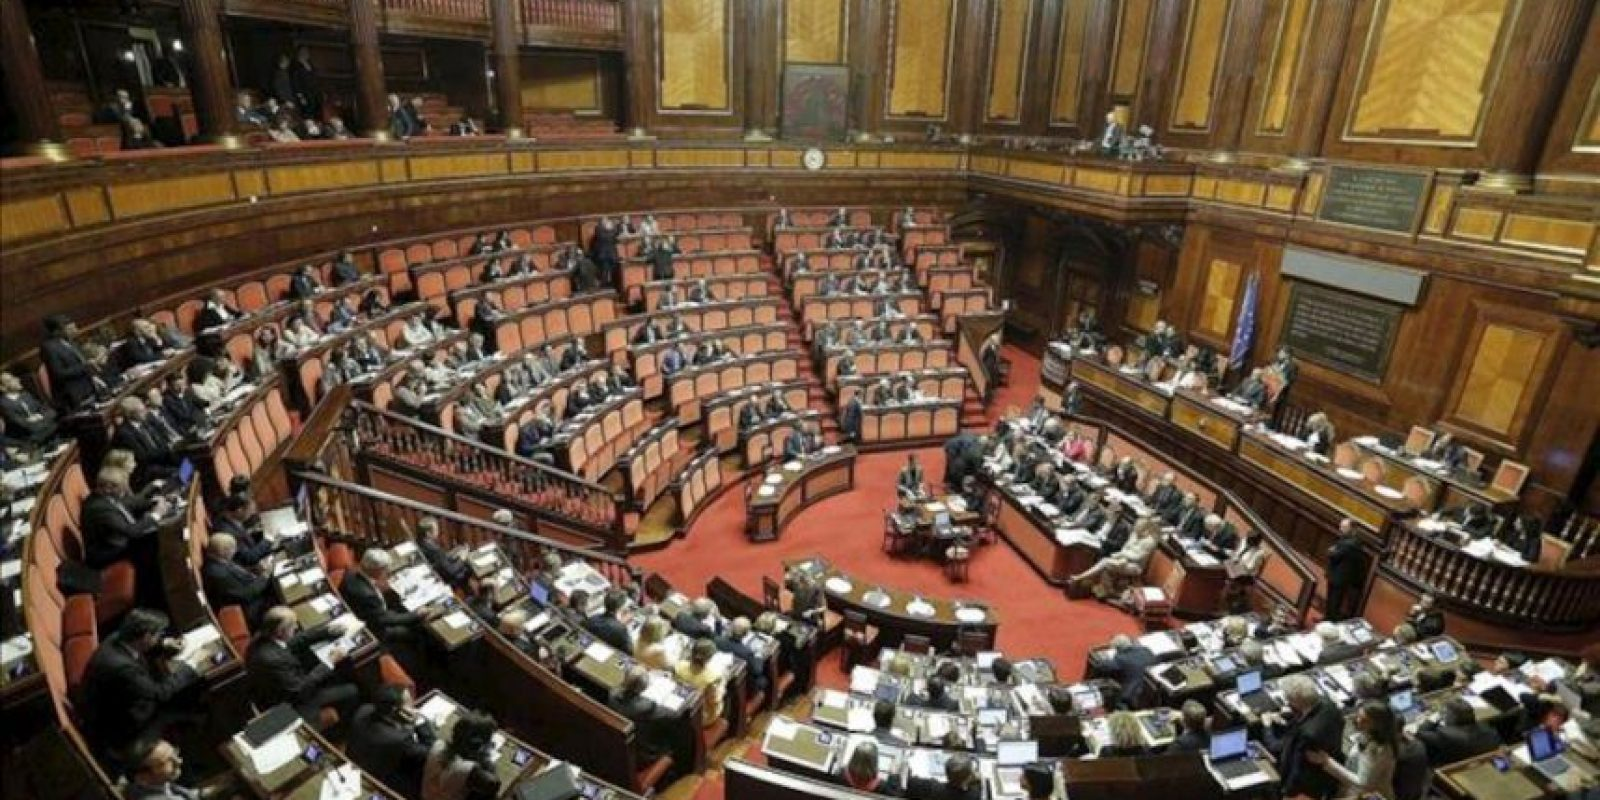 Vista general del Senado italiano. EFE